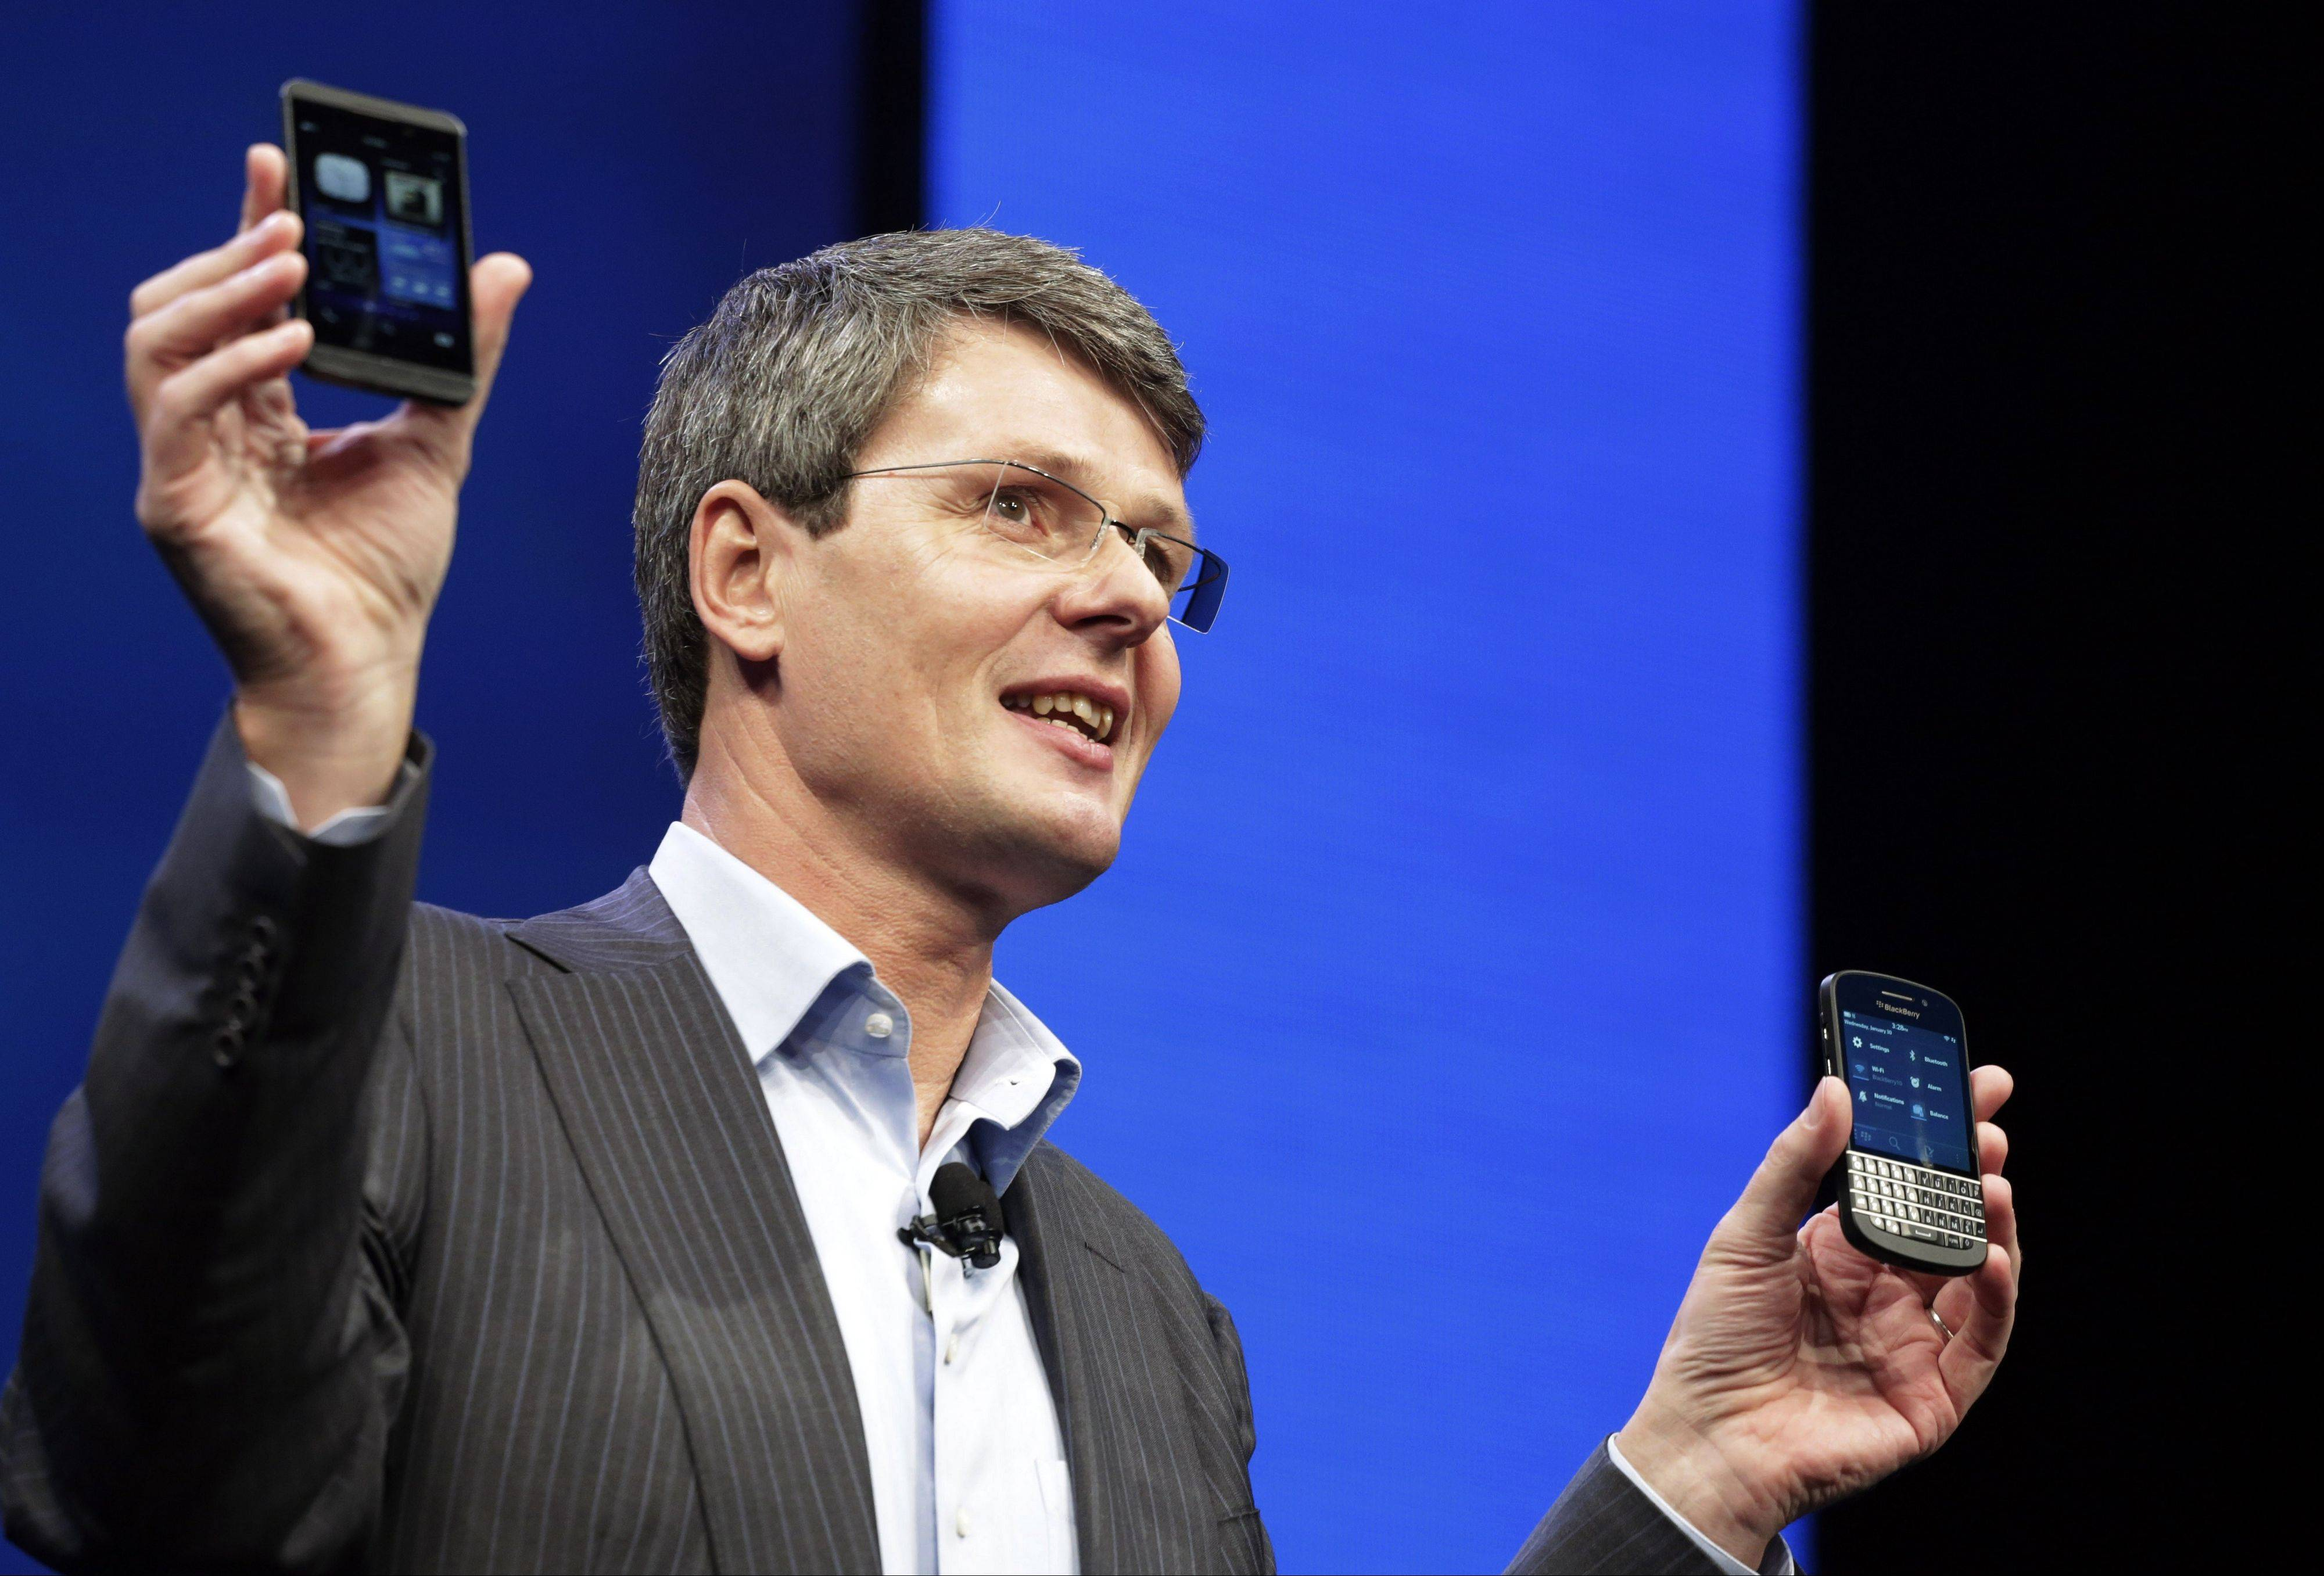 Thorsten Heins, CEO of Research In Motion Ltd., introduces the BlackBerry Z10, in New York.